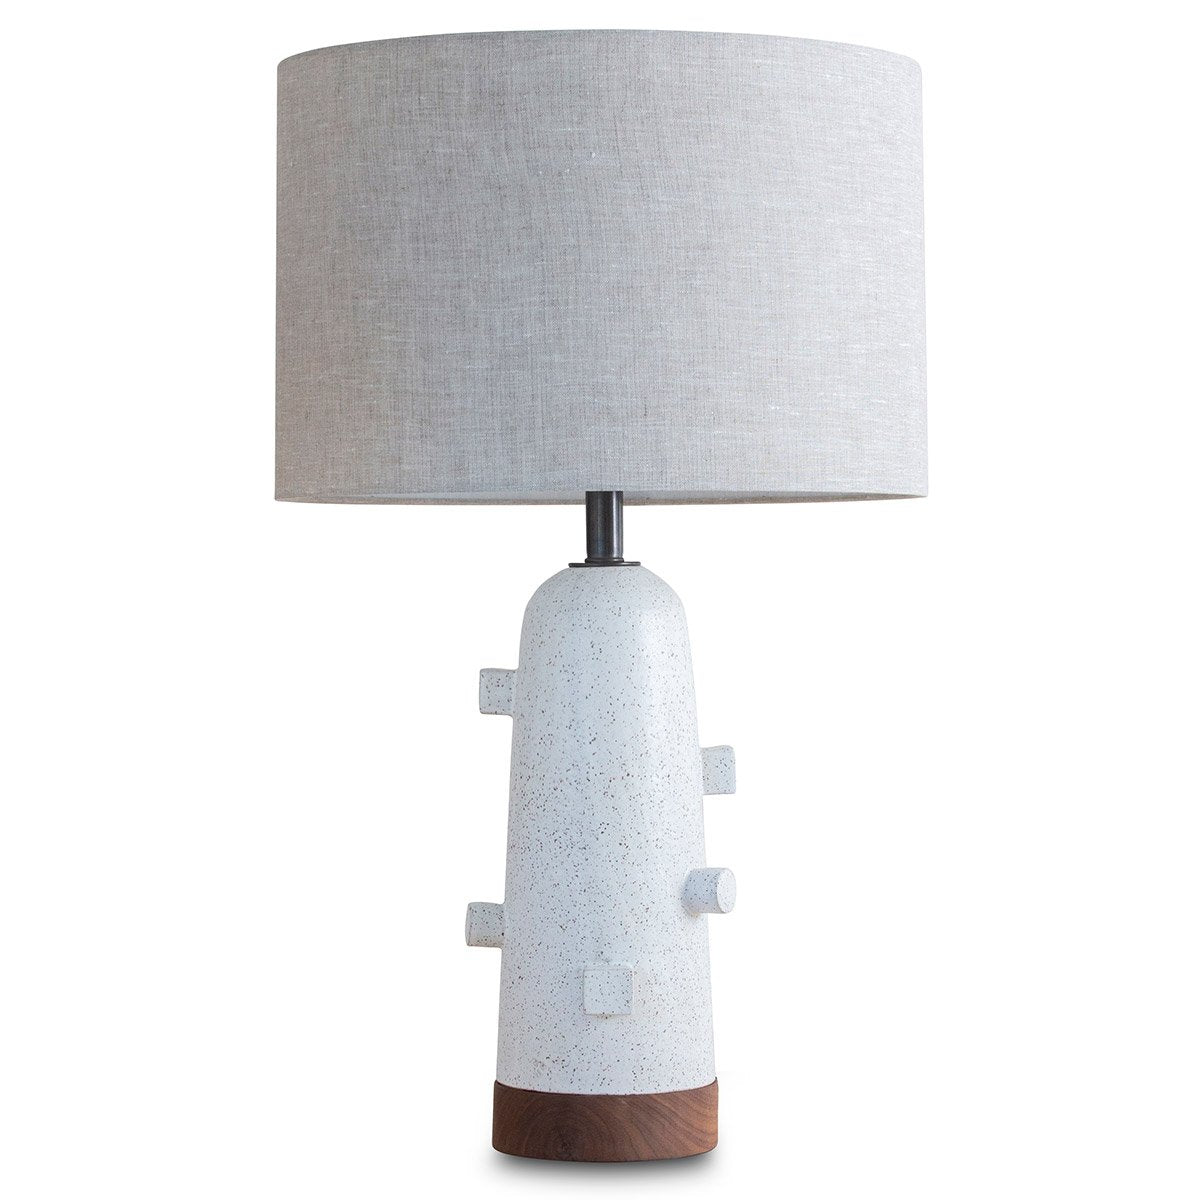 Artificial Intelligence Table Lamp-Eleish Van Breems Home